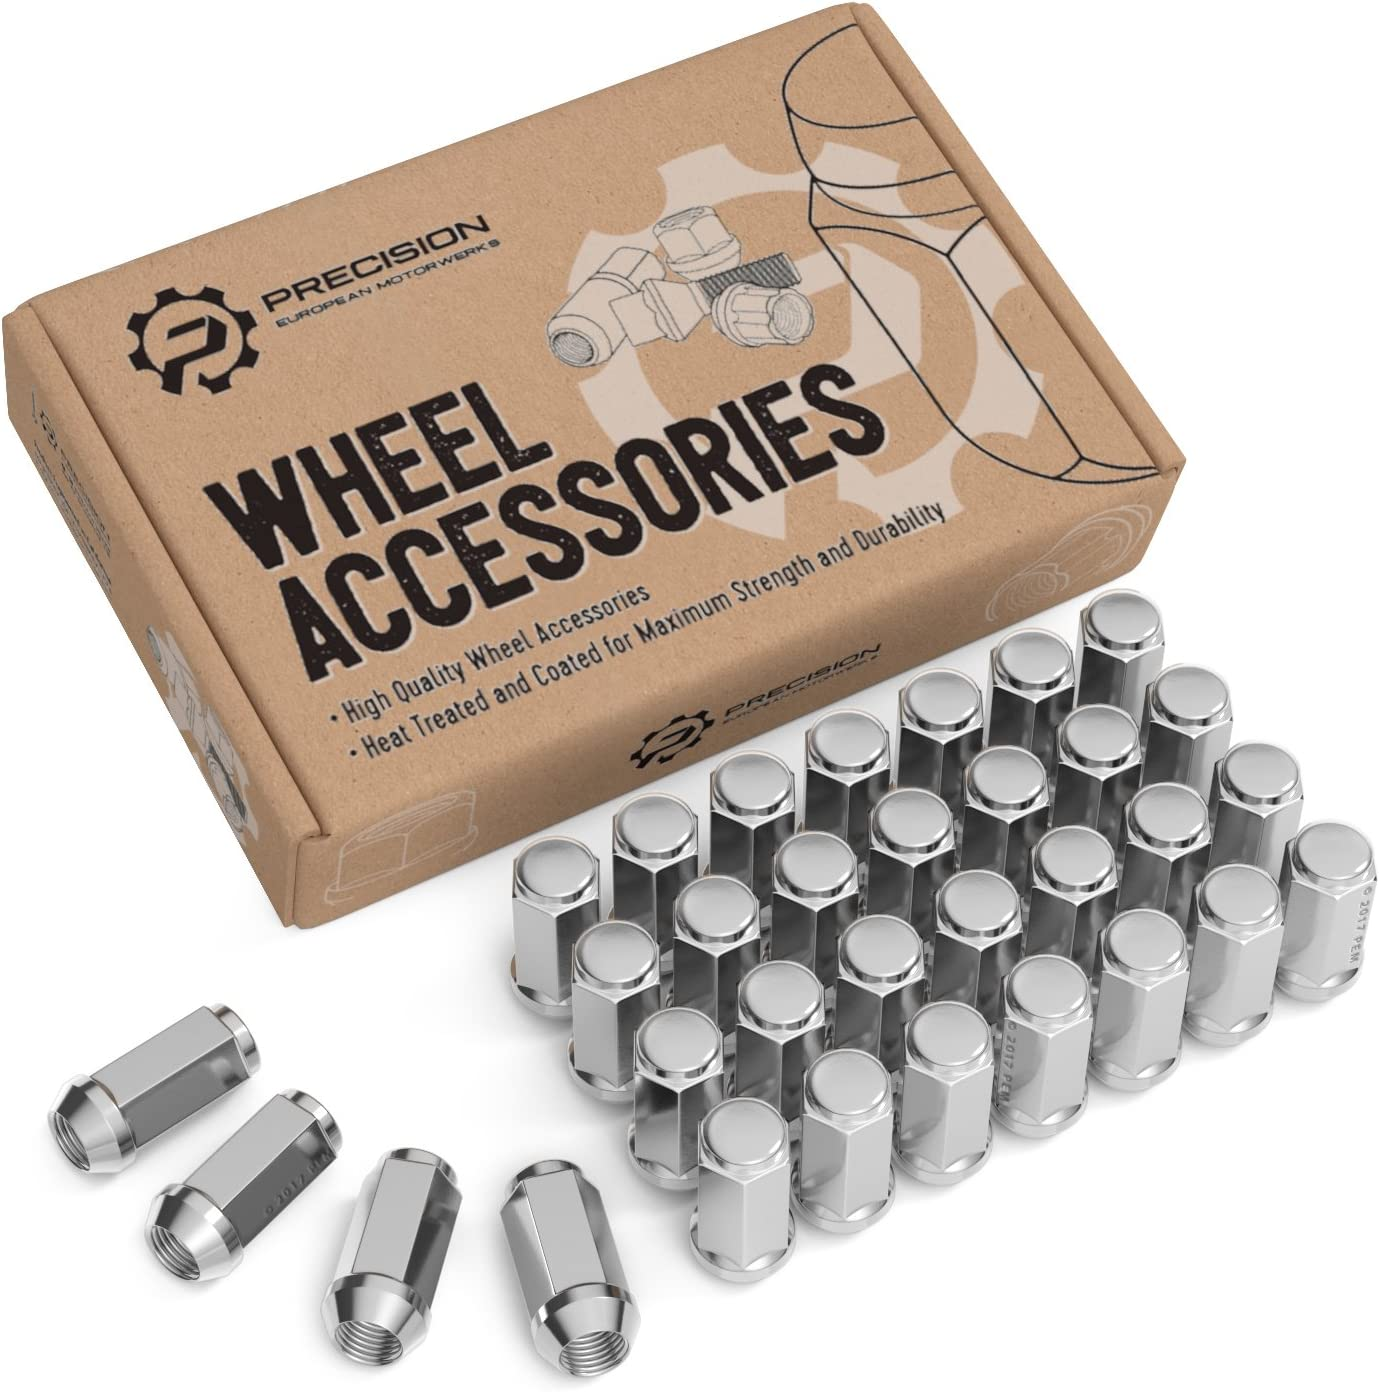 Conical Cone Taper Acorn Seat Closed End Extended fits 8Lug Dodge Chevy Ford 1.8 inch Length Installs with 19mm or 3//4 inch Hex Socket 32pcs Silver Chrome Bulge 1//2x20 Lug Nuts